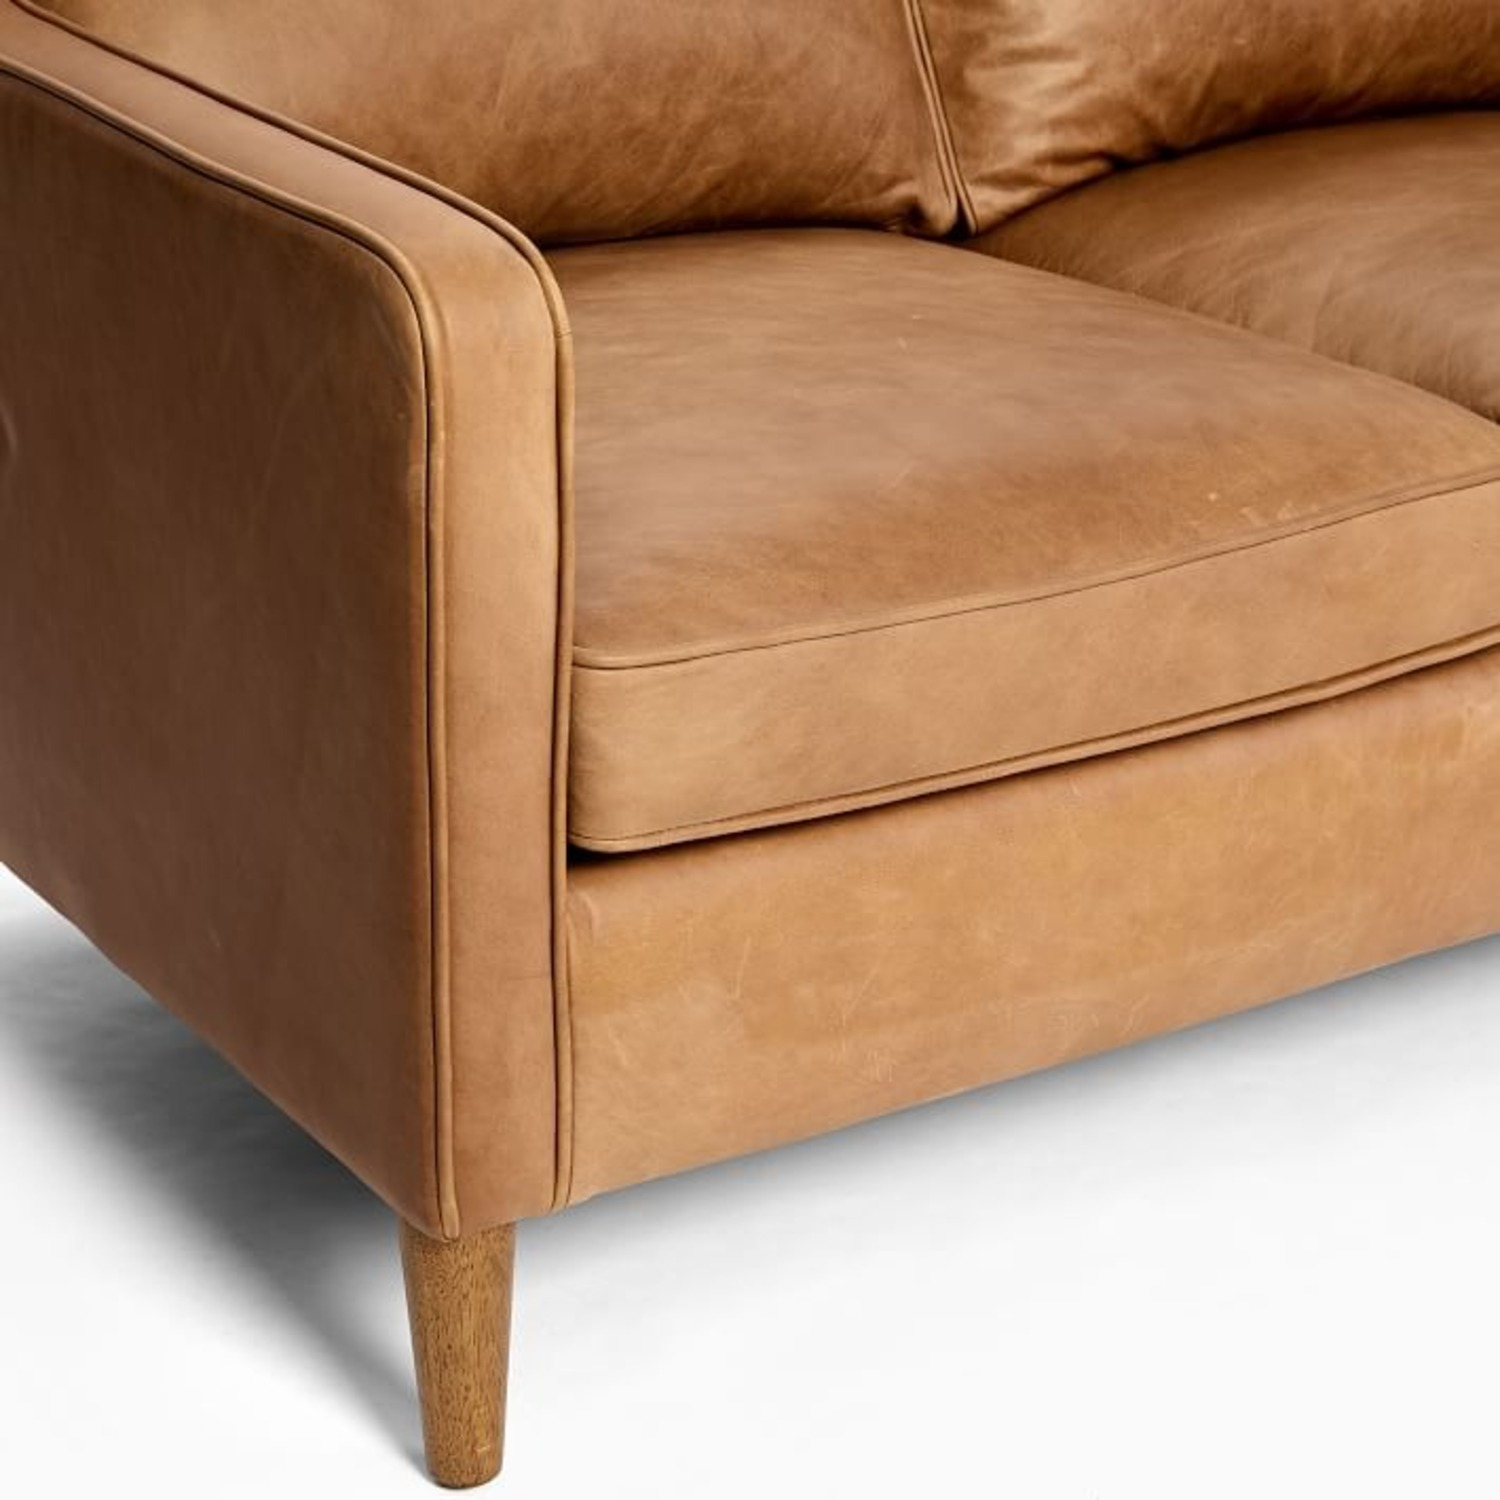 West Elm Leather Couch - image-3